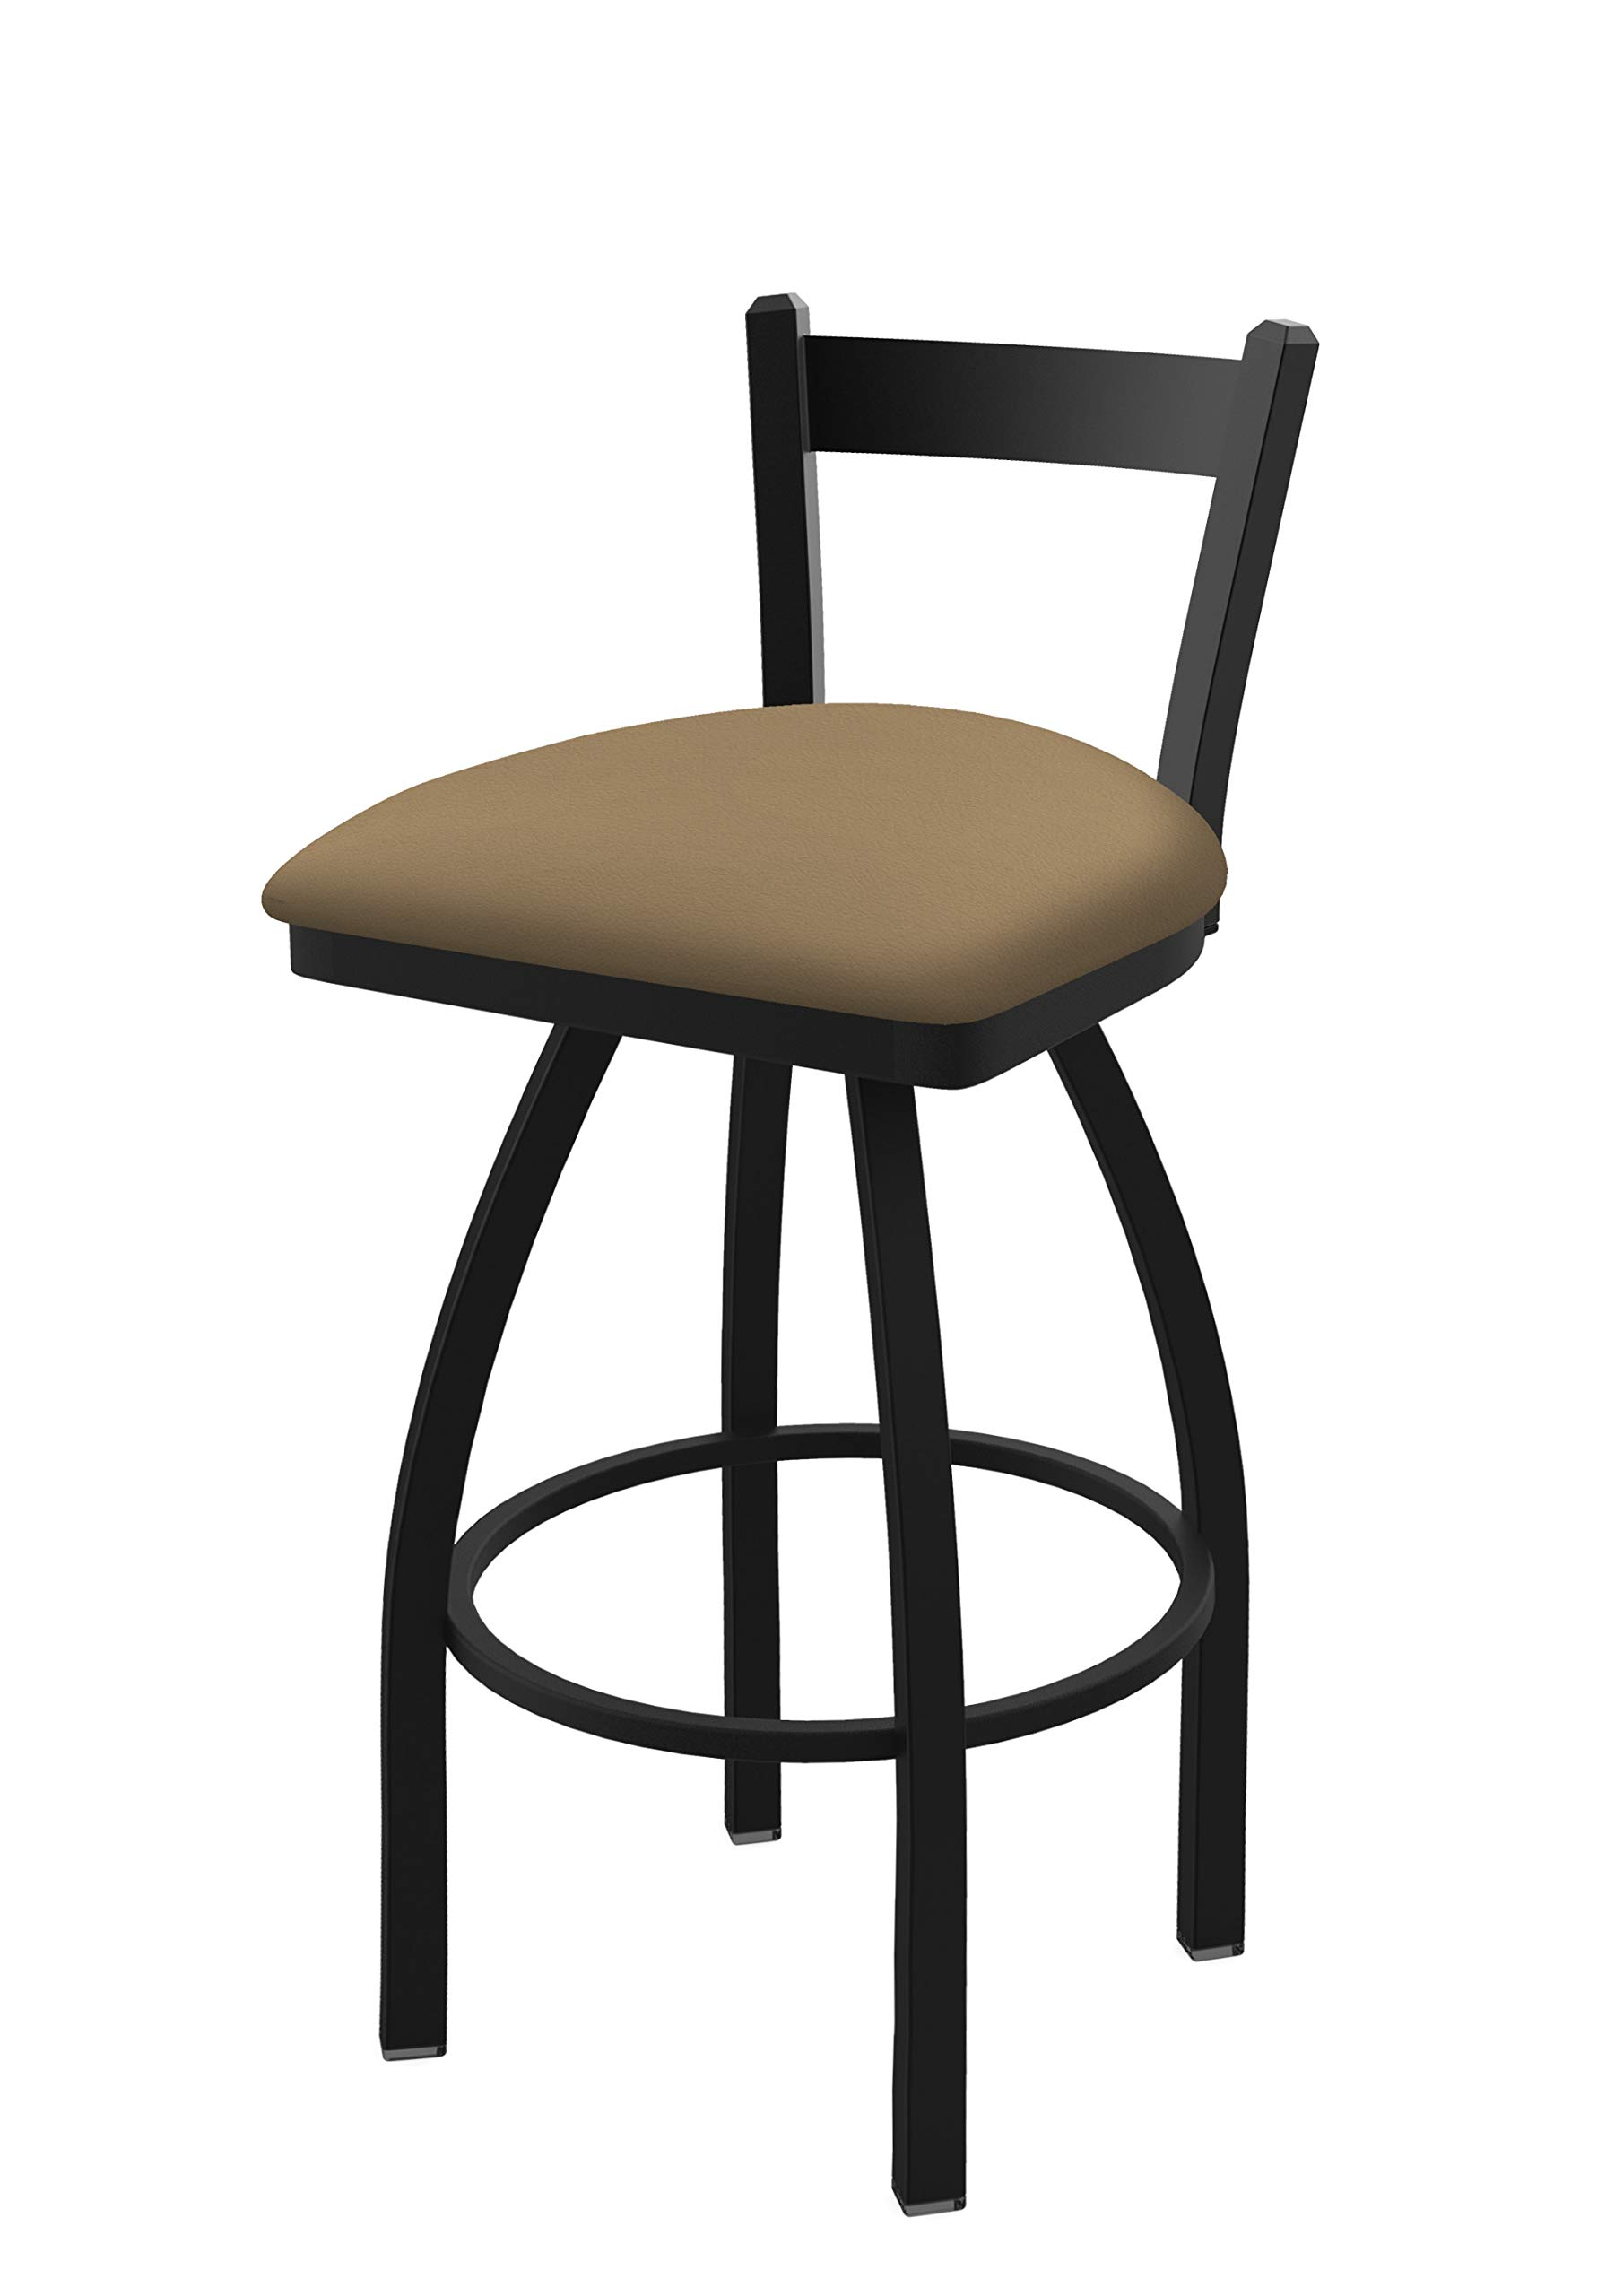 Holland Bar Stool Co. 82125BW013 821 Catalina 25'' Low Back Swivel Counter Black Wrinkle Finish and Canter Sand Seat Bar Stool